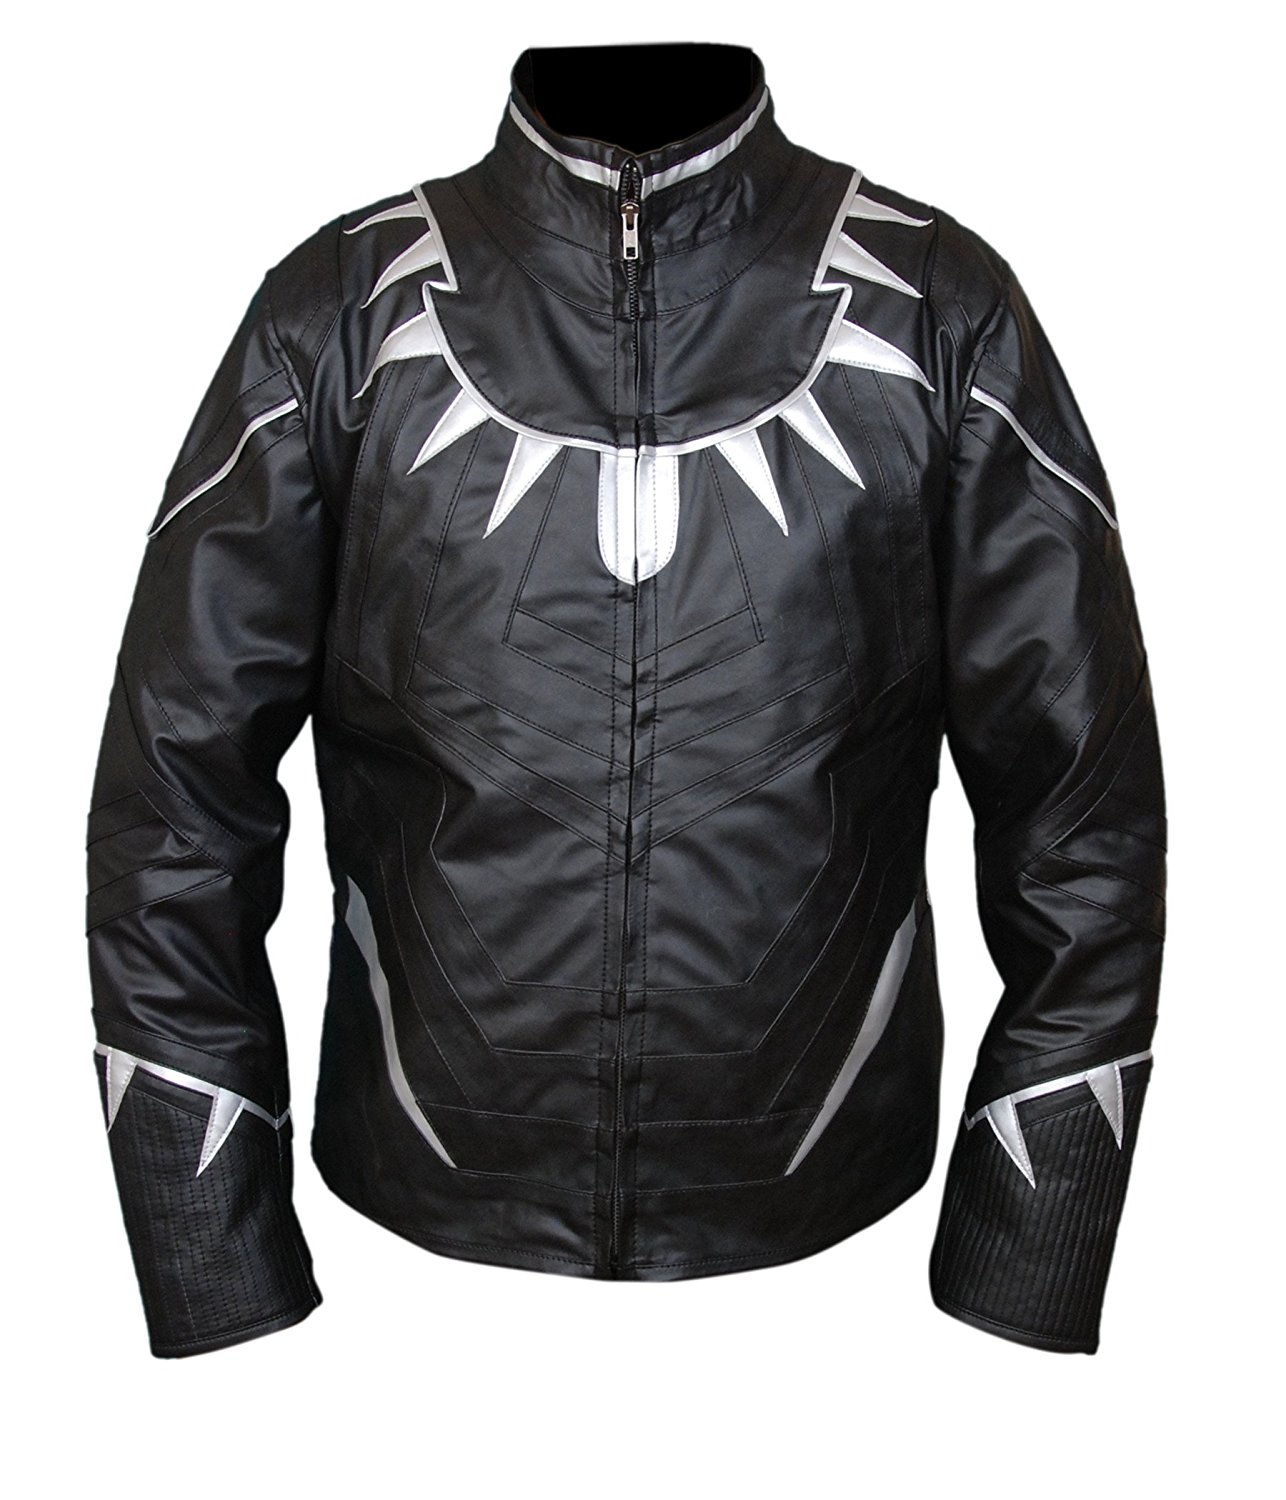 Captain America Civil War Movie Black Panther Leather Jacket - Jackets Maker